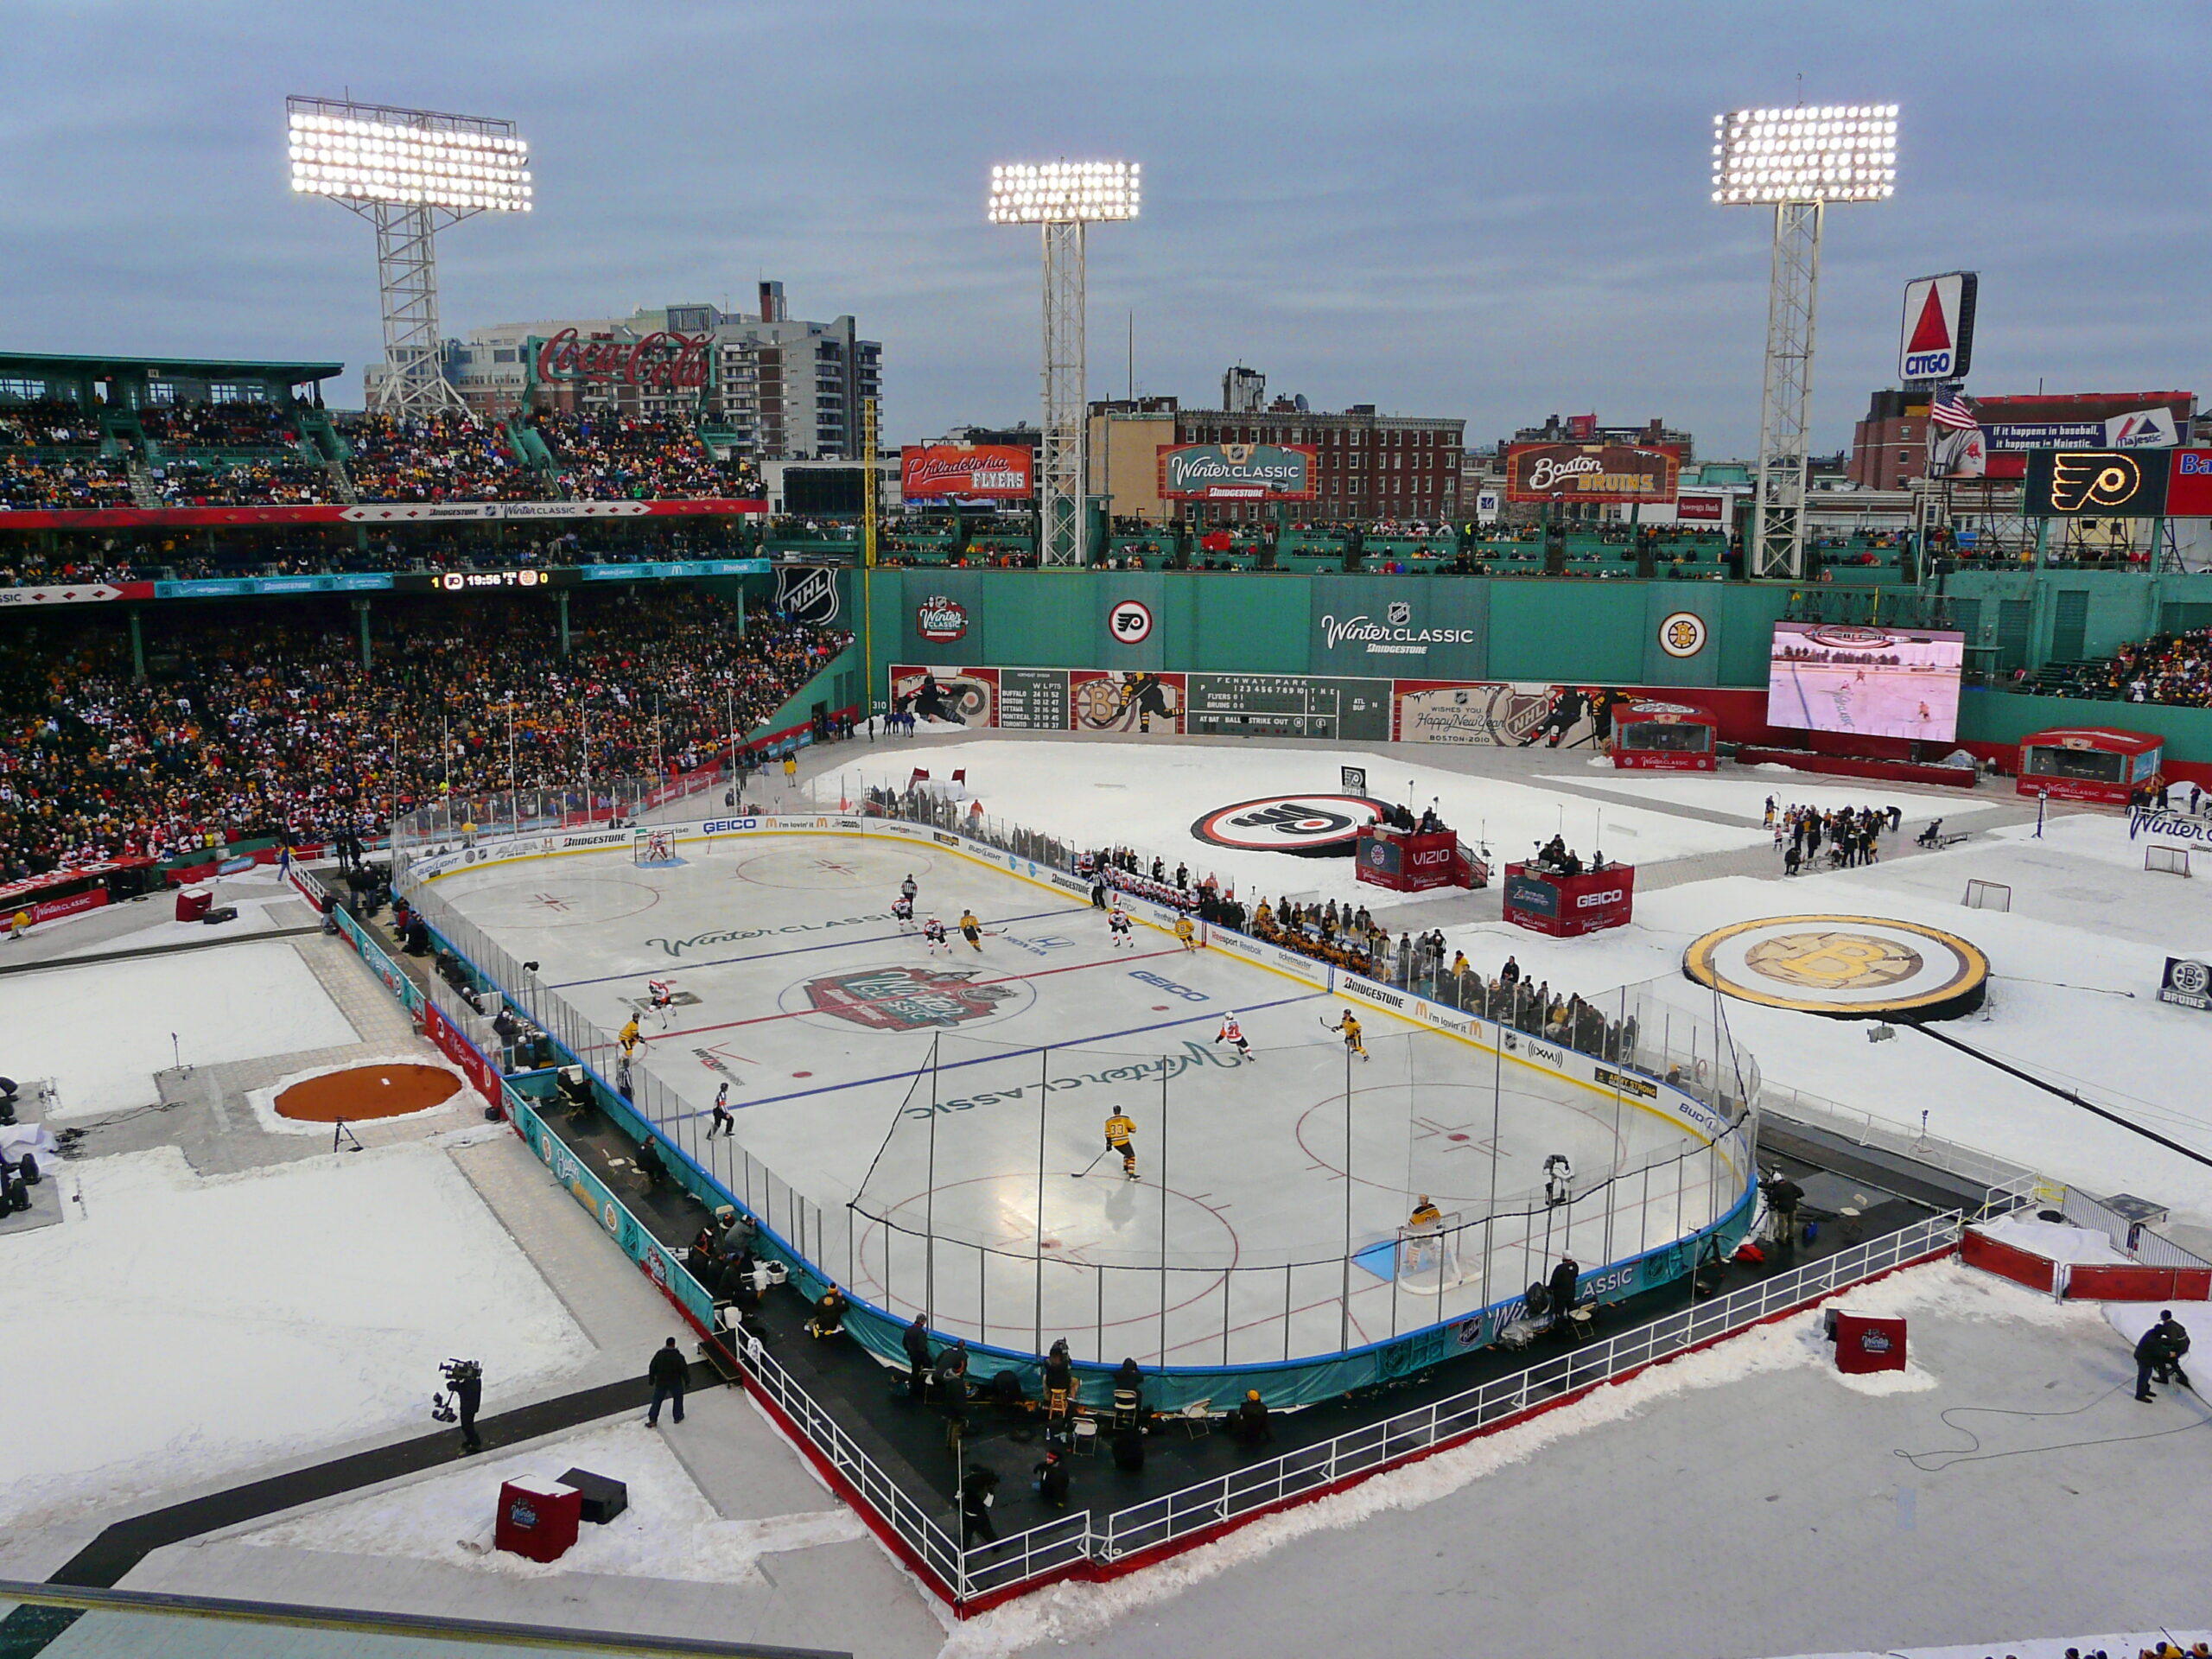 The 2010 NHL Winter Classic was at Fenway Park. Final score